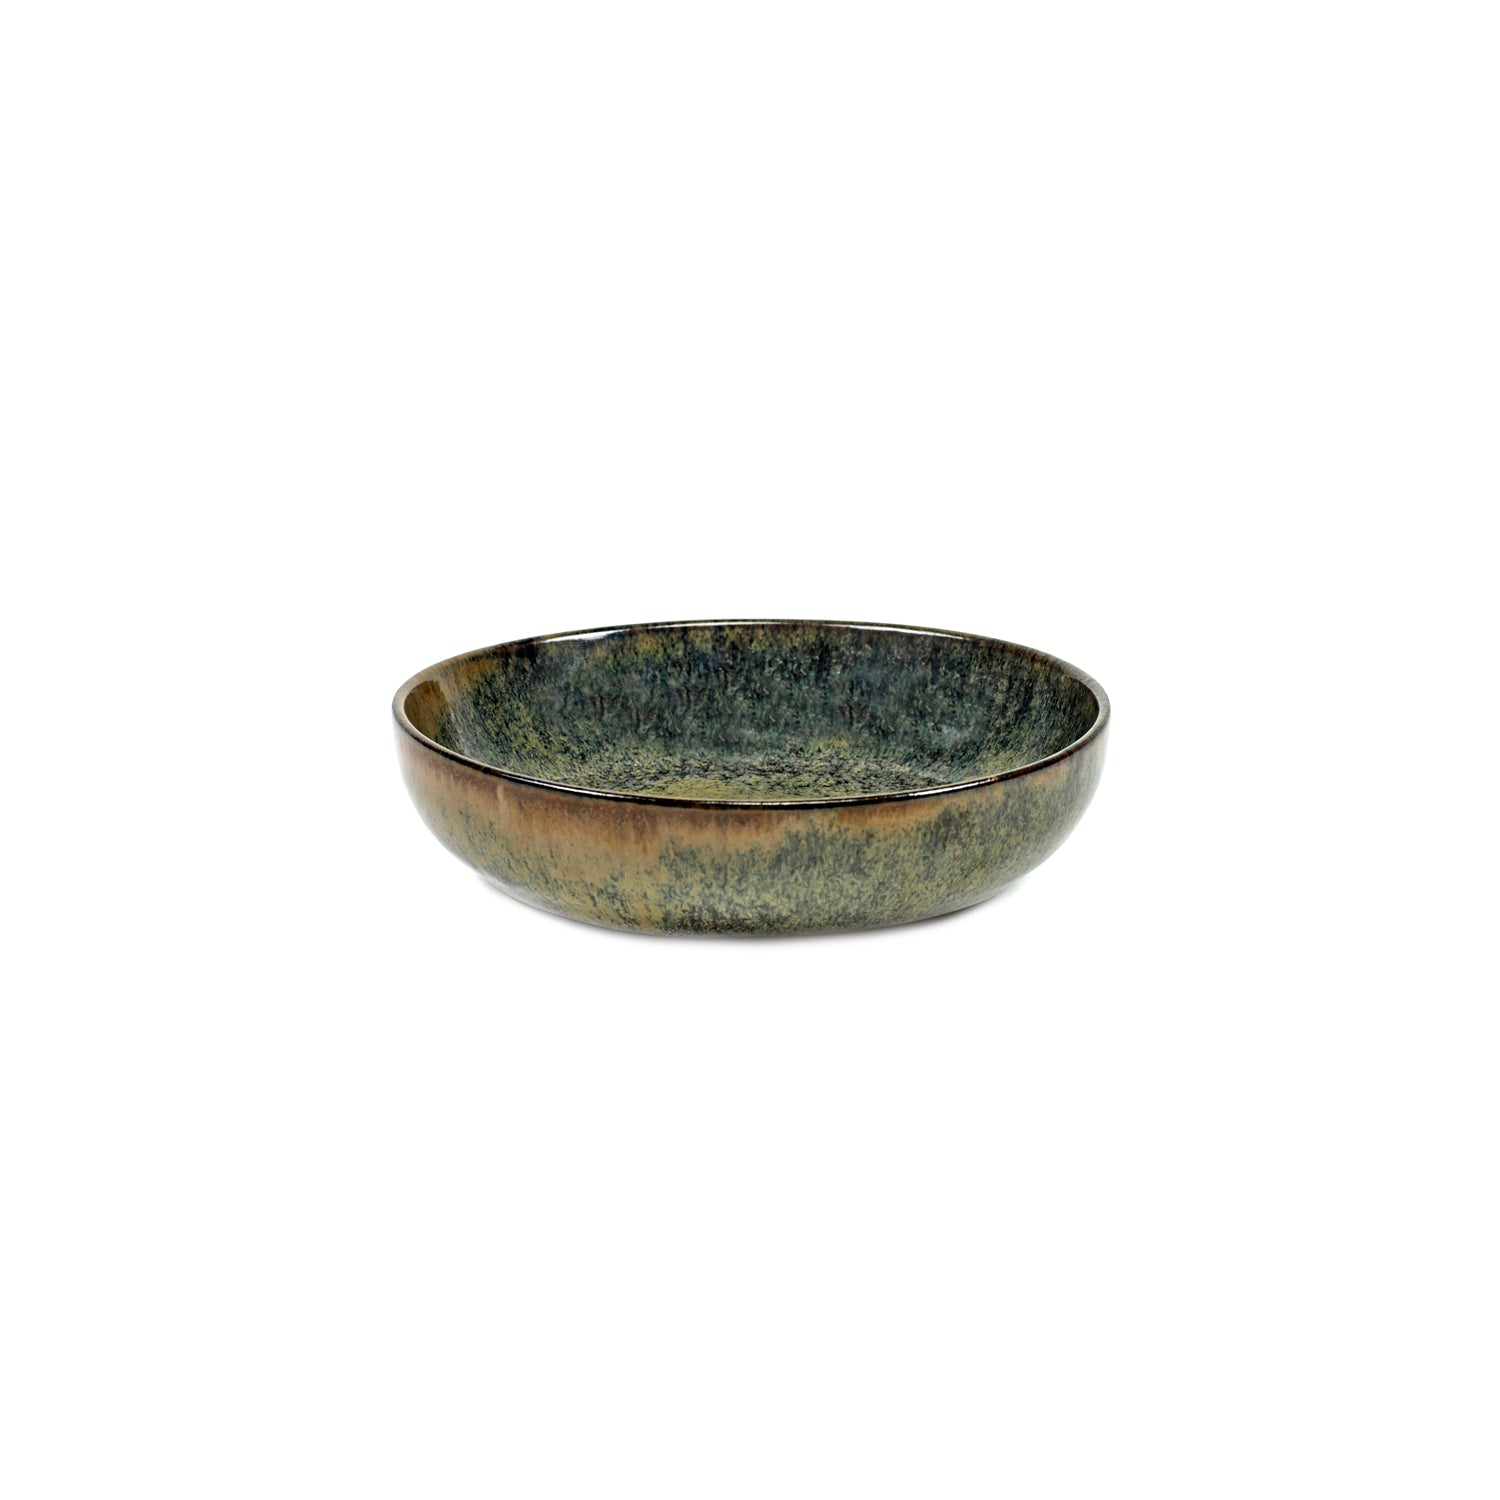 Small Shallow Bowl